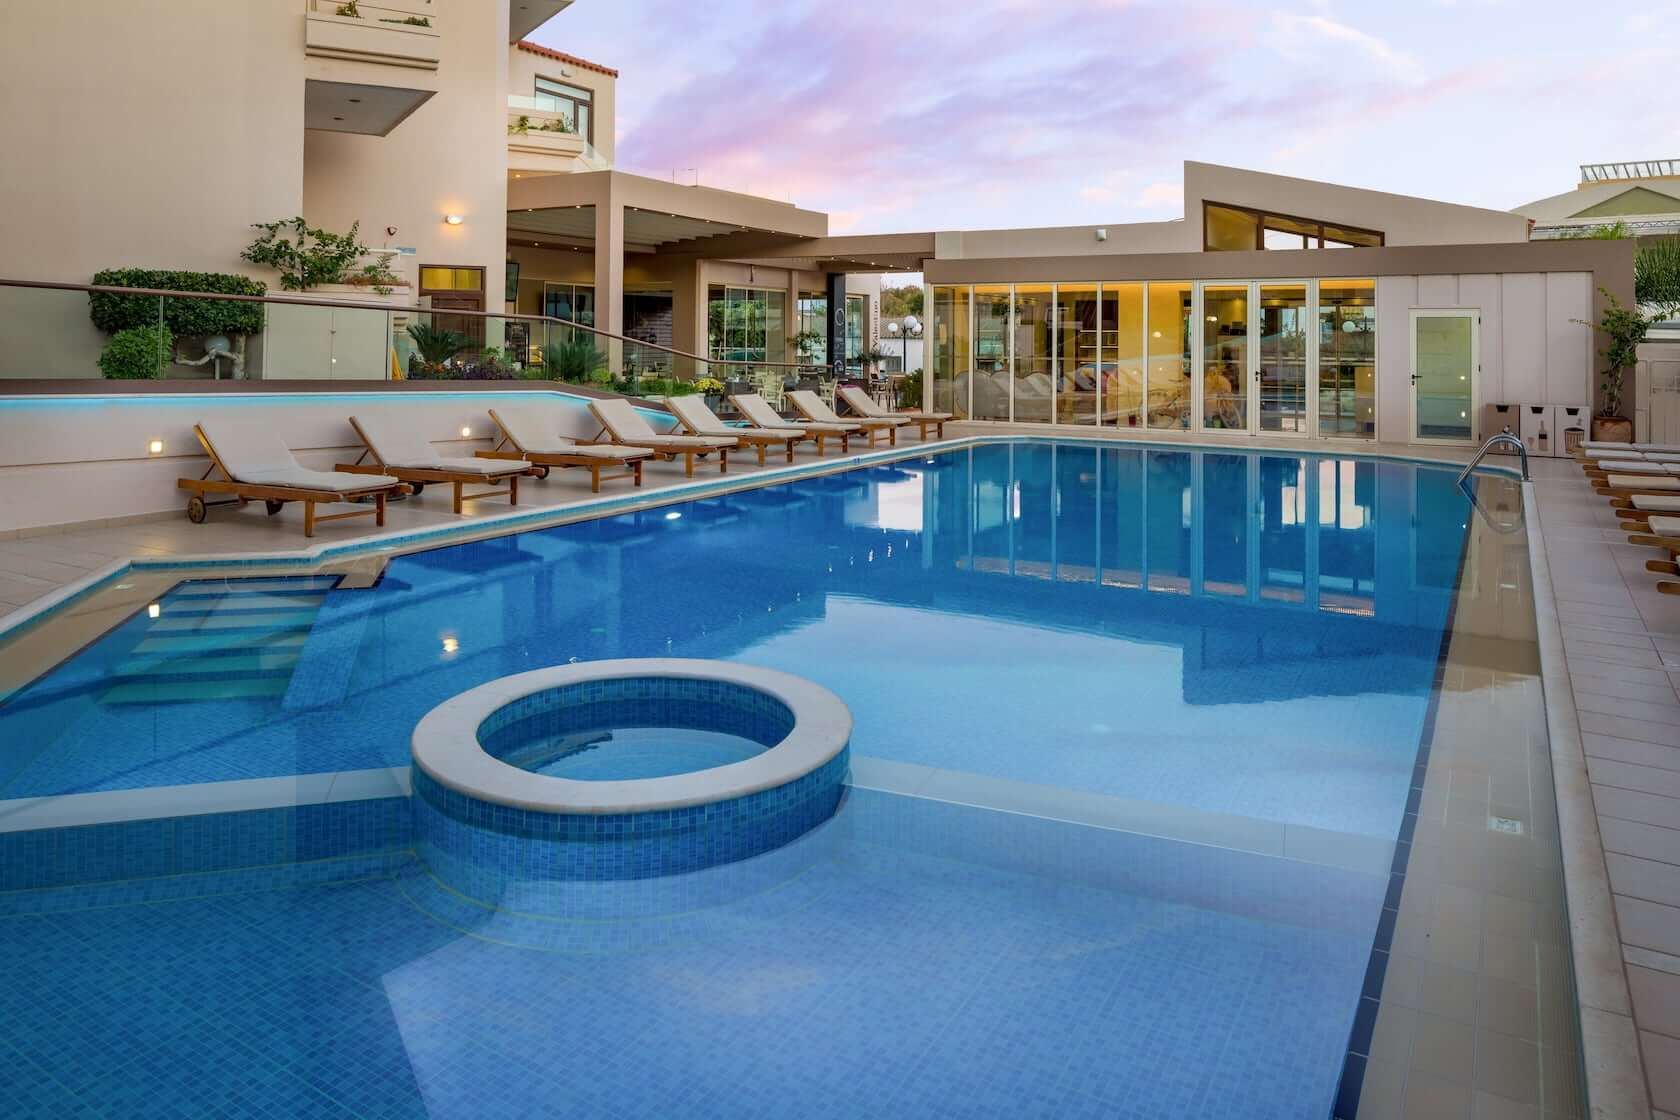 Sunbeds by the sizeable swimming pool in Oscar Suites & Village in Agia Marina Platanias, Crete.